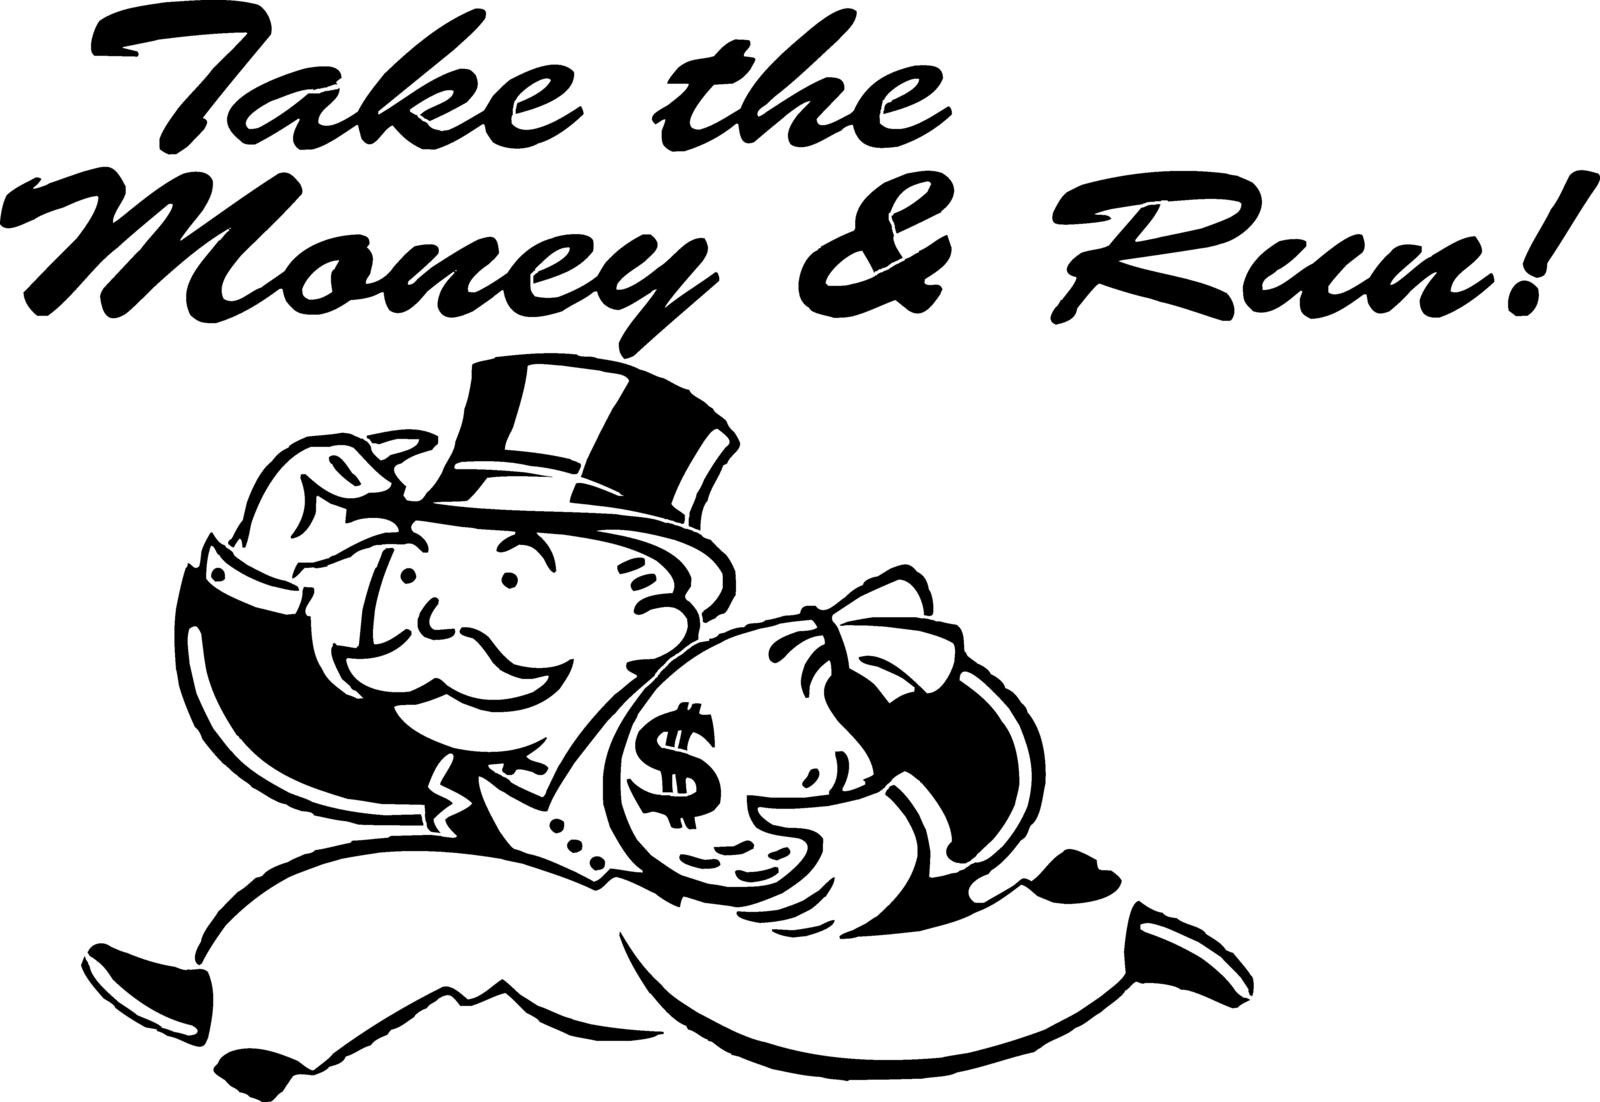 Monopoly Money Black and White Money Bags Drawing at Getdrawings